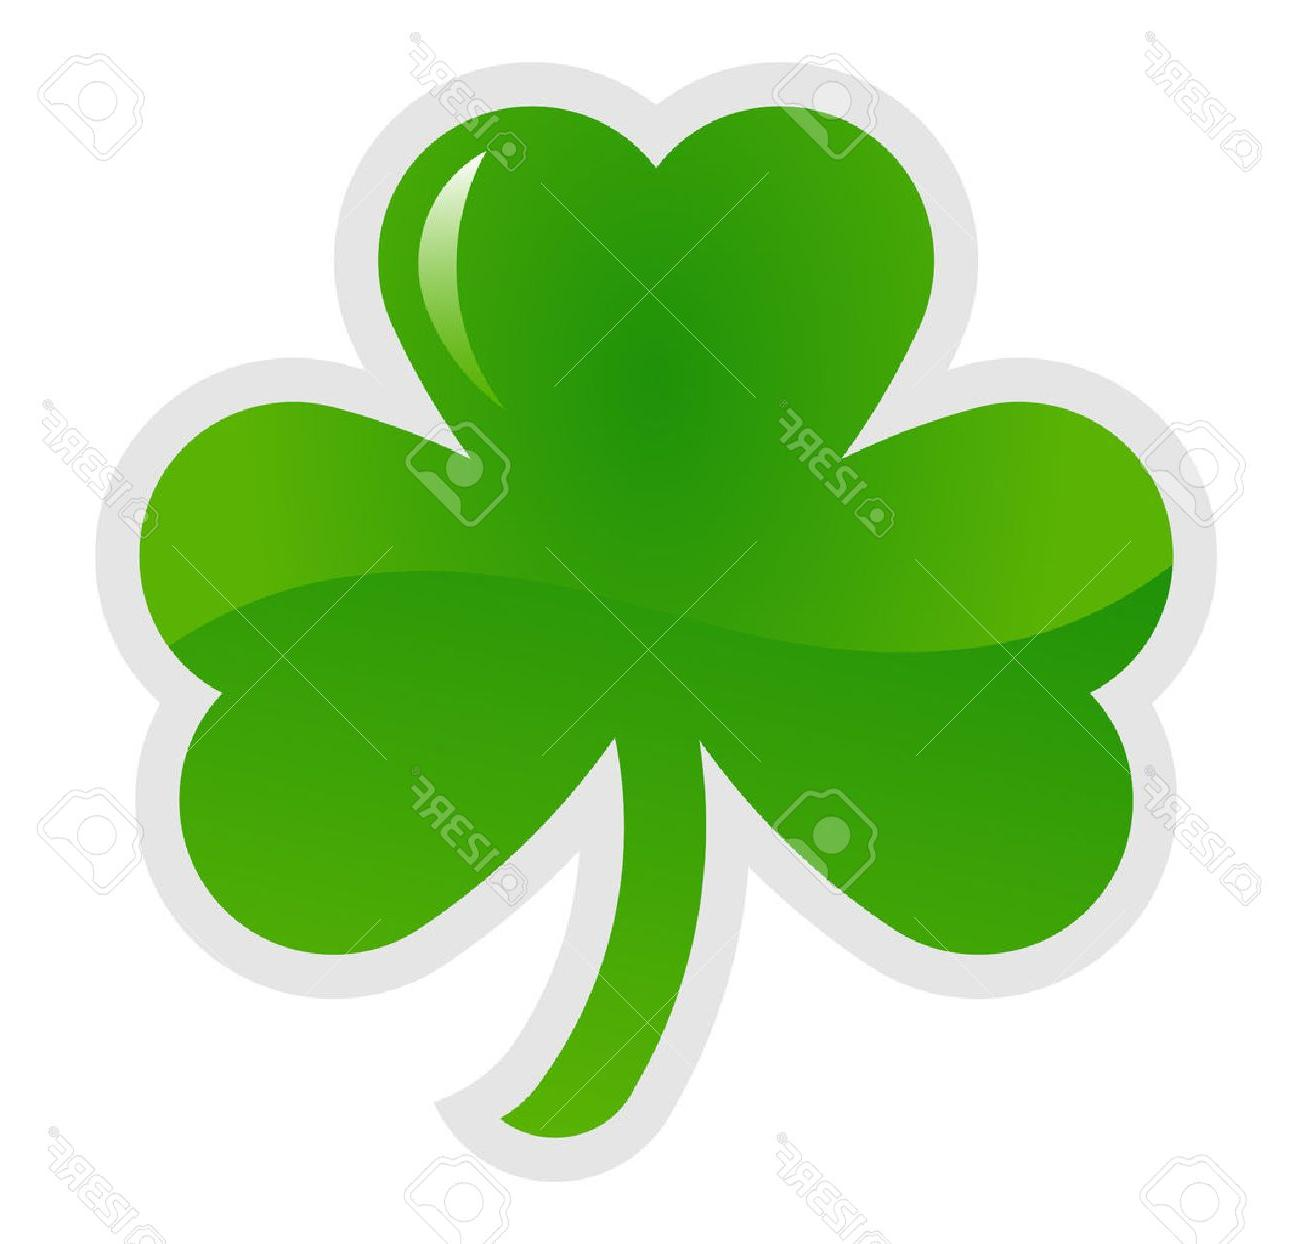 1300x1244 Best Free 3 Leaf Clover Vector Pictures Free Vector Art, Images